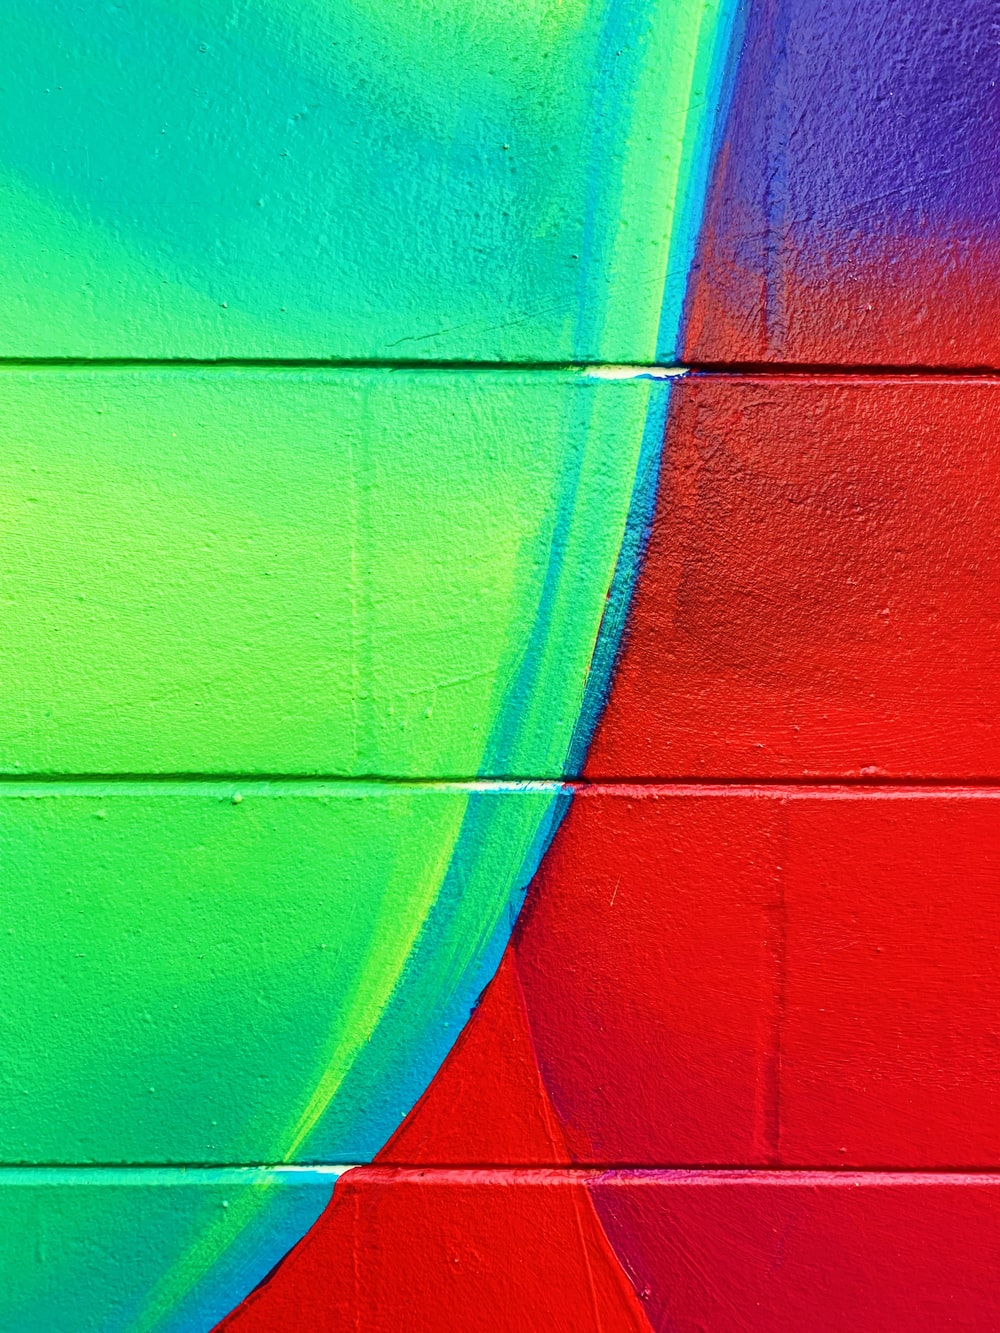 green, blue, and red painted brick wall